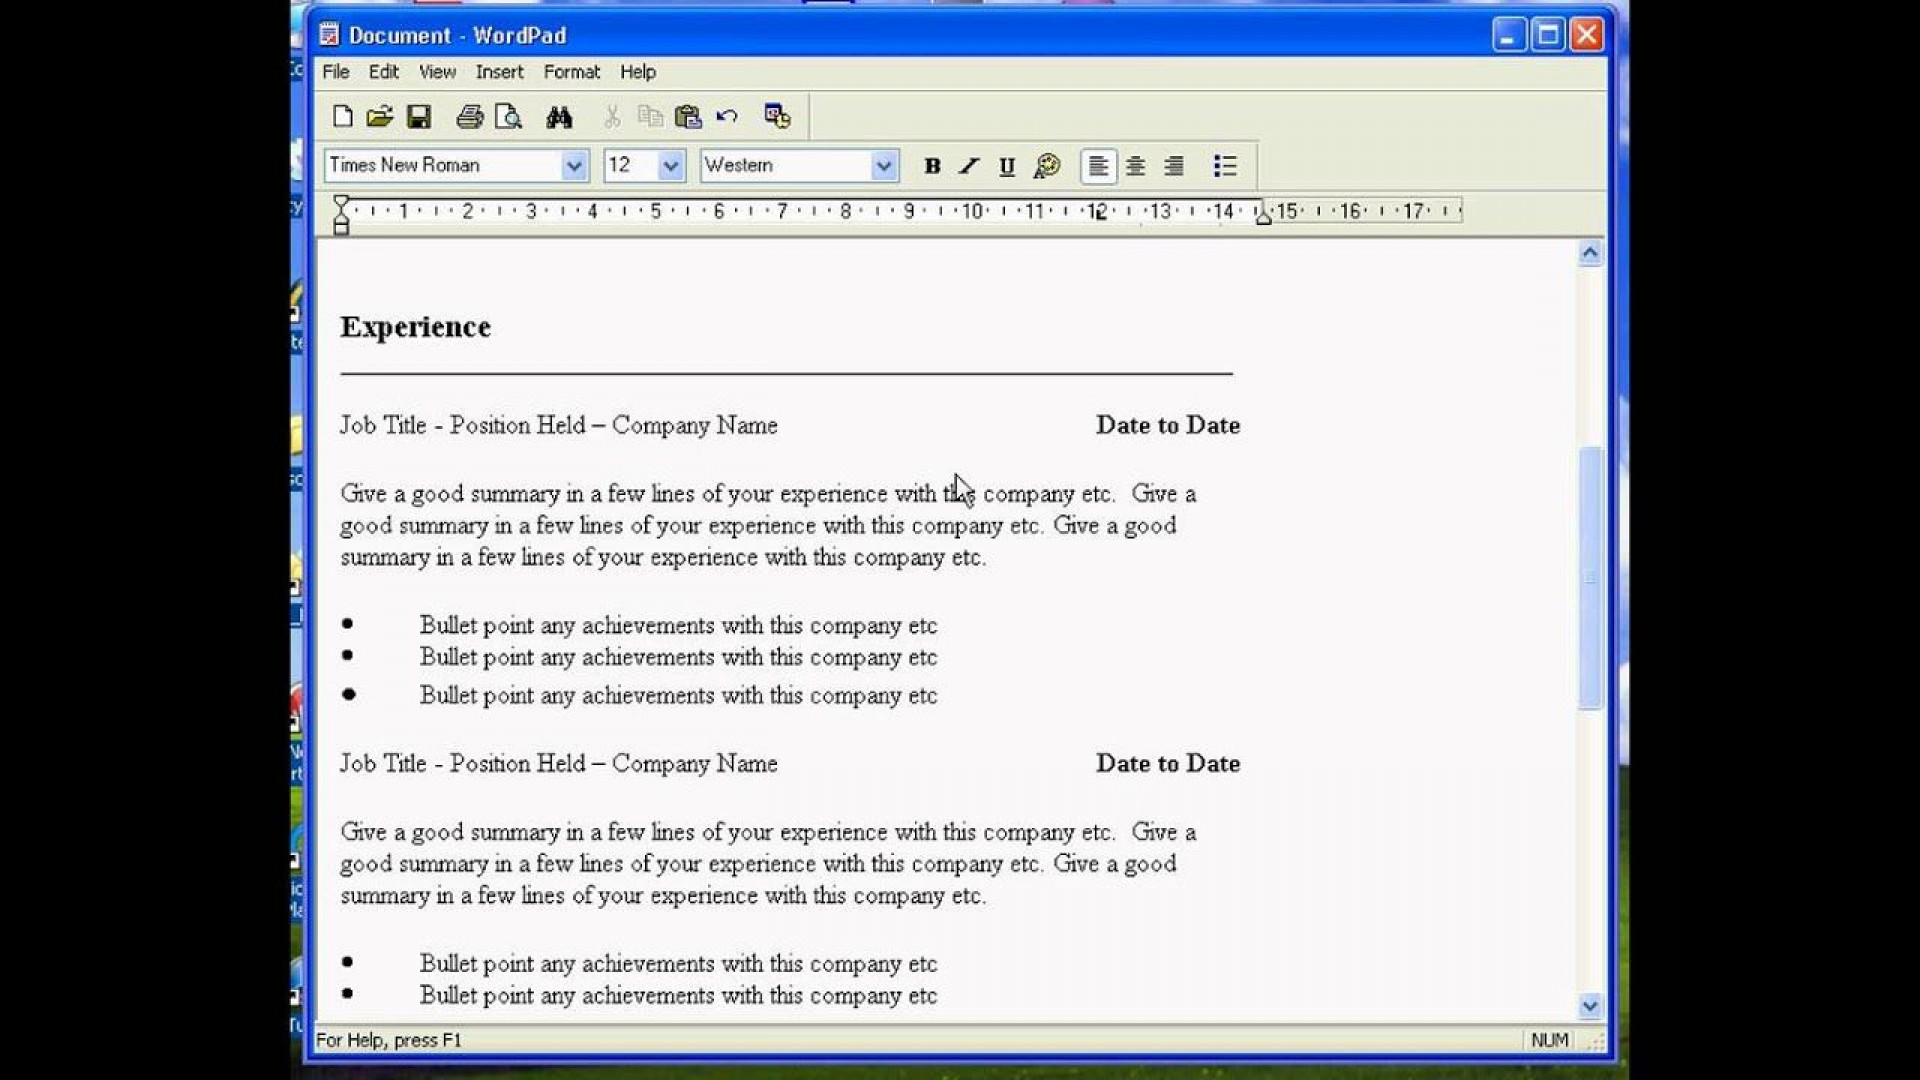 005 Shocking Resume Template For Wordpad Idea  Free Cv Download1920